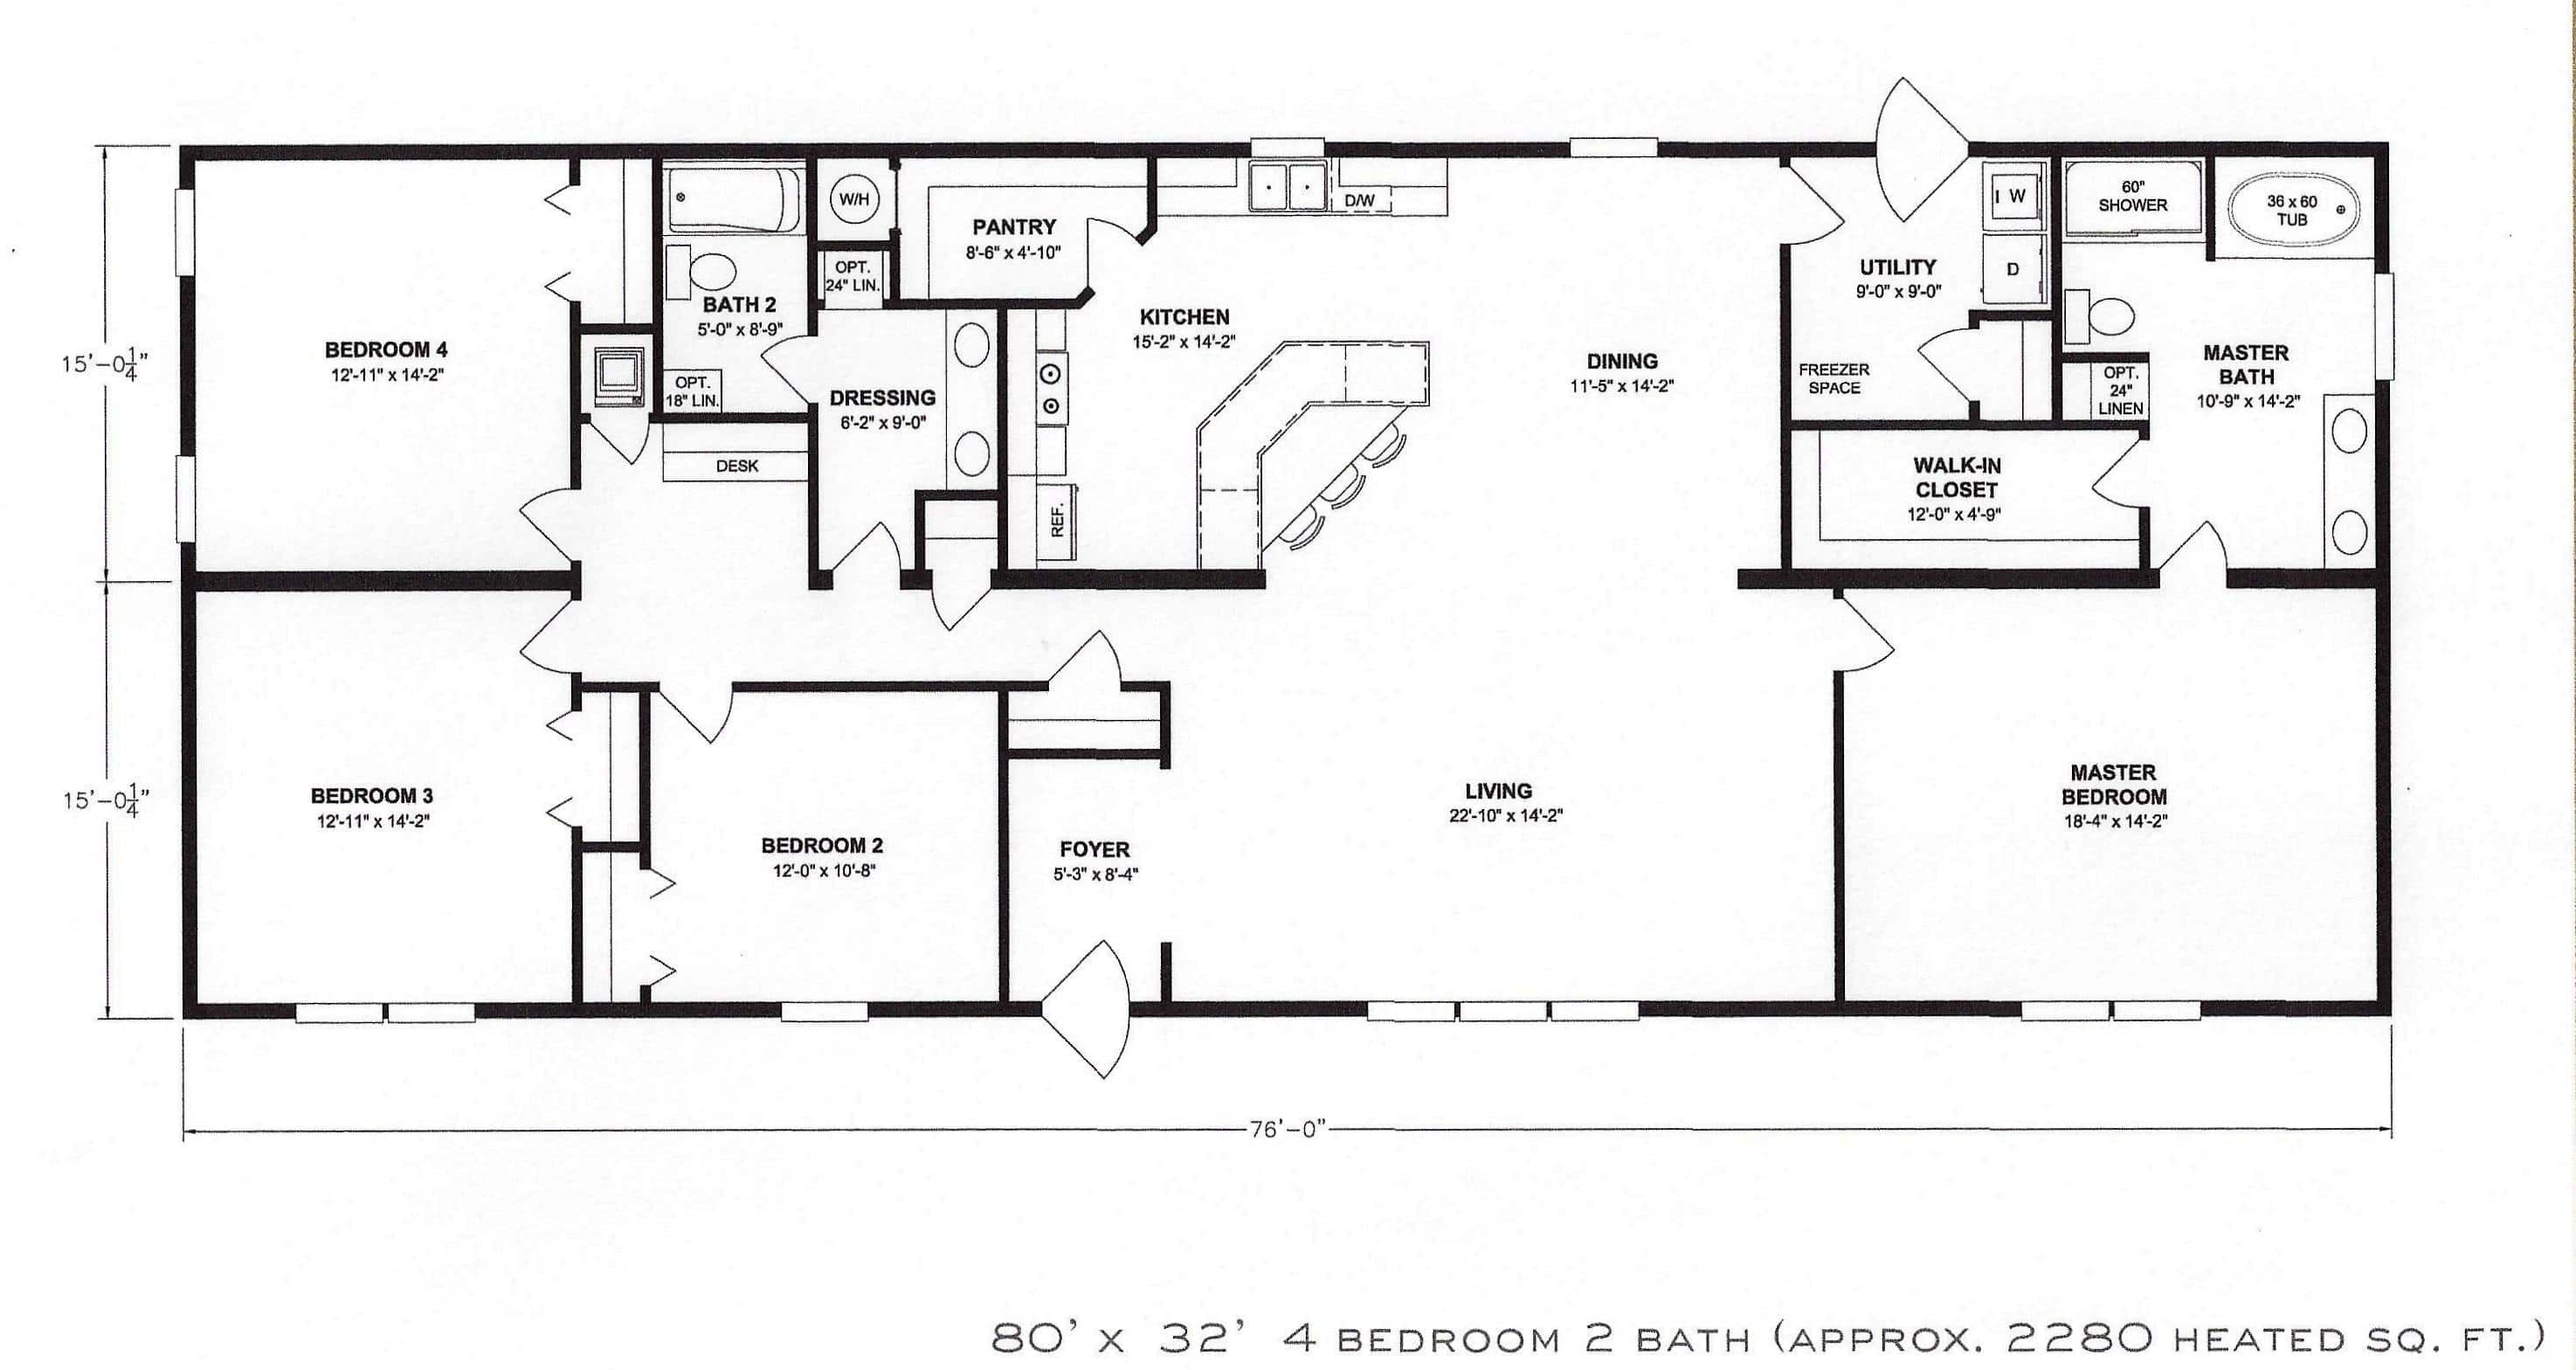 4 bedroom floor plan f 1001 hawks homes manufactured modular conway little rock arkansas for 4 bedroom cabin plans